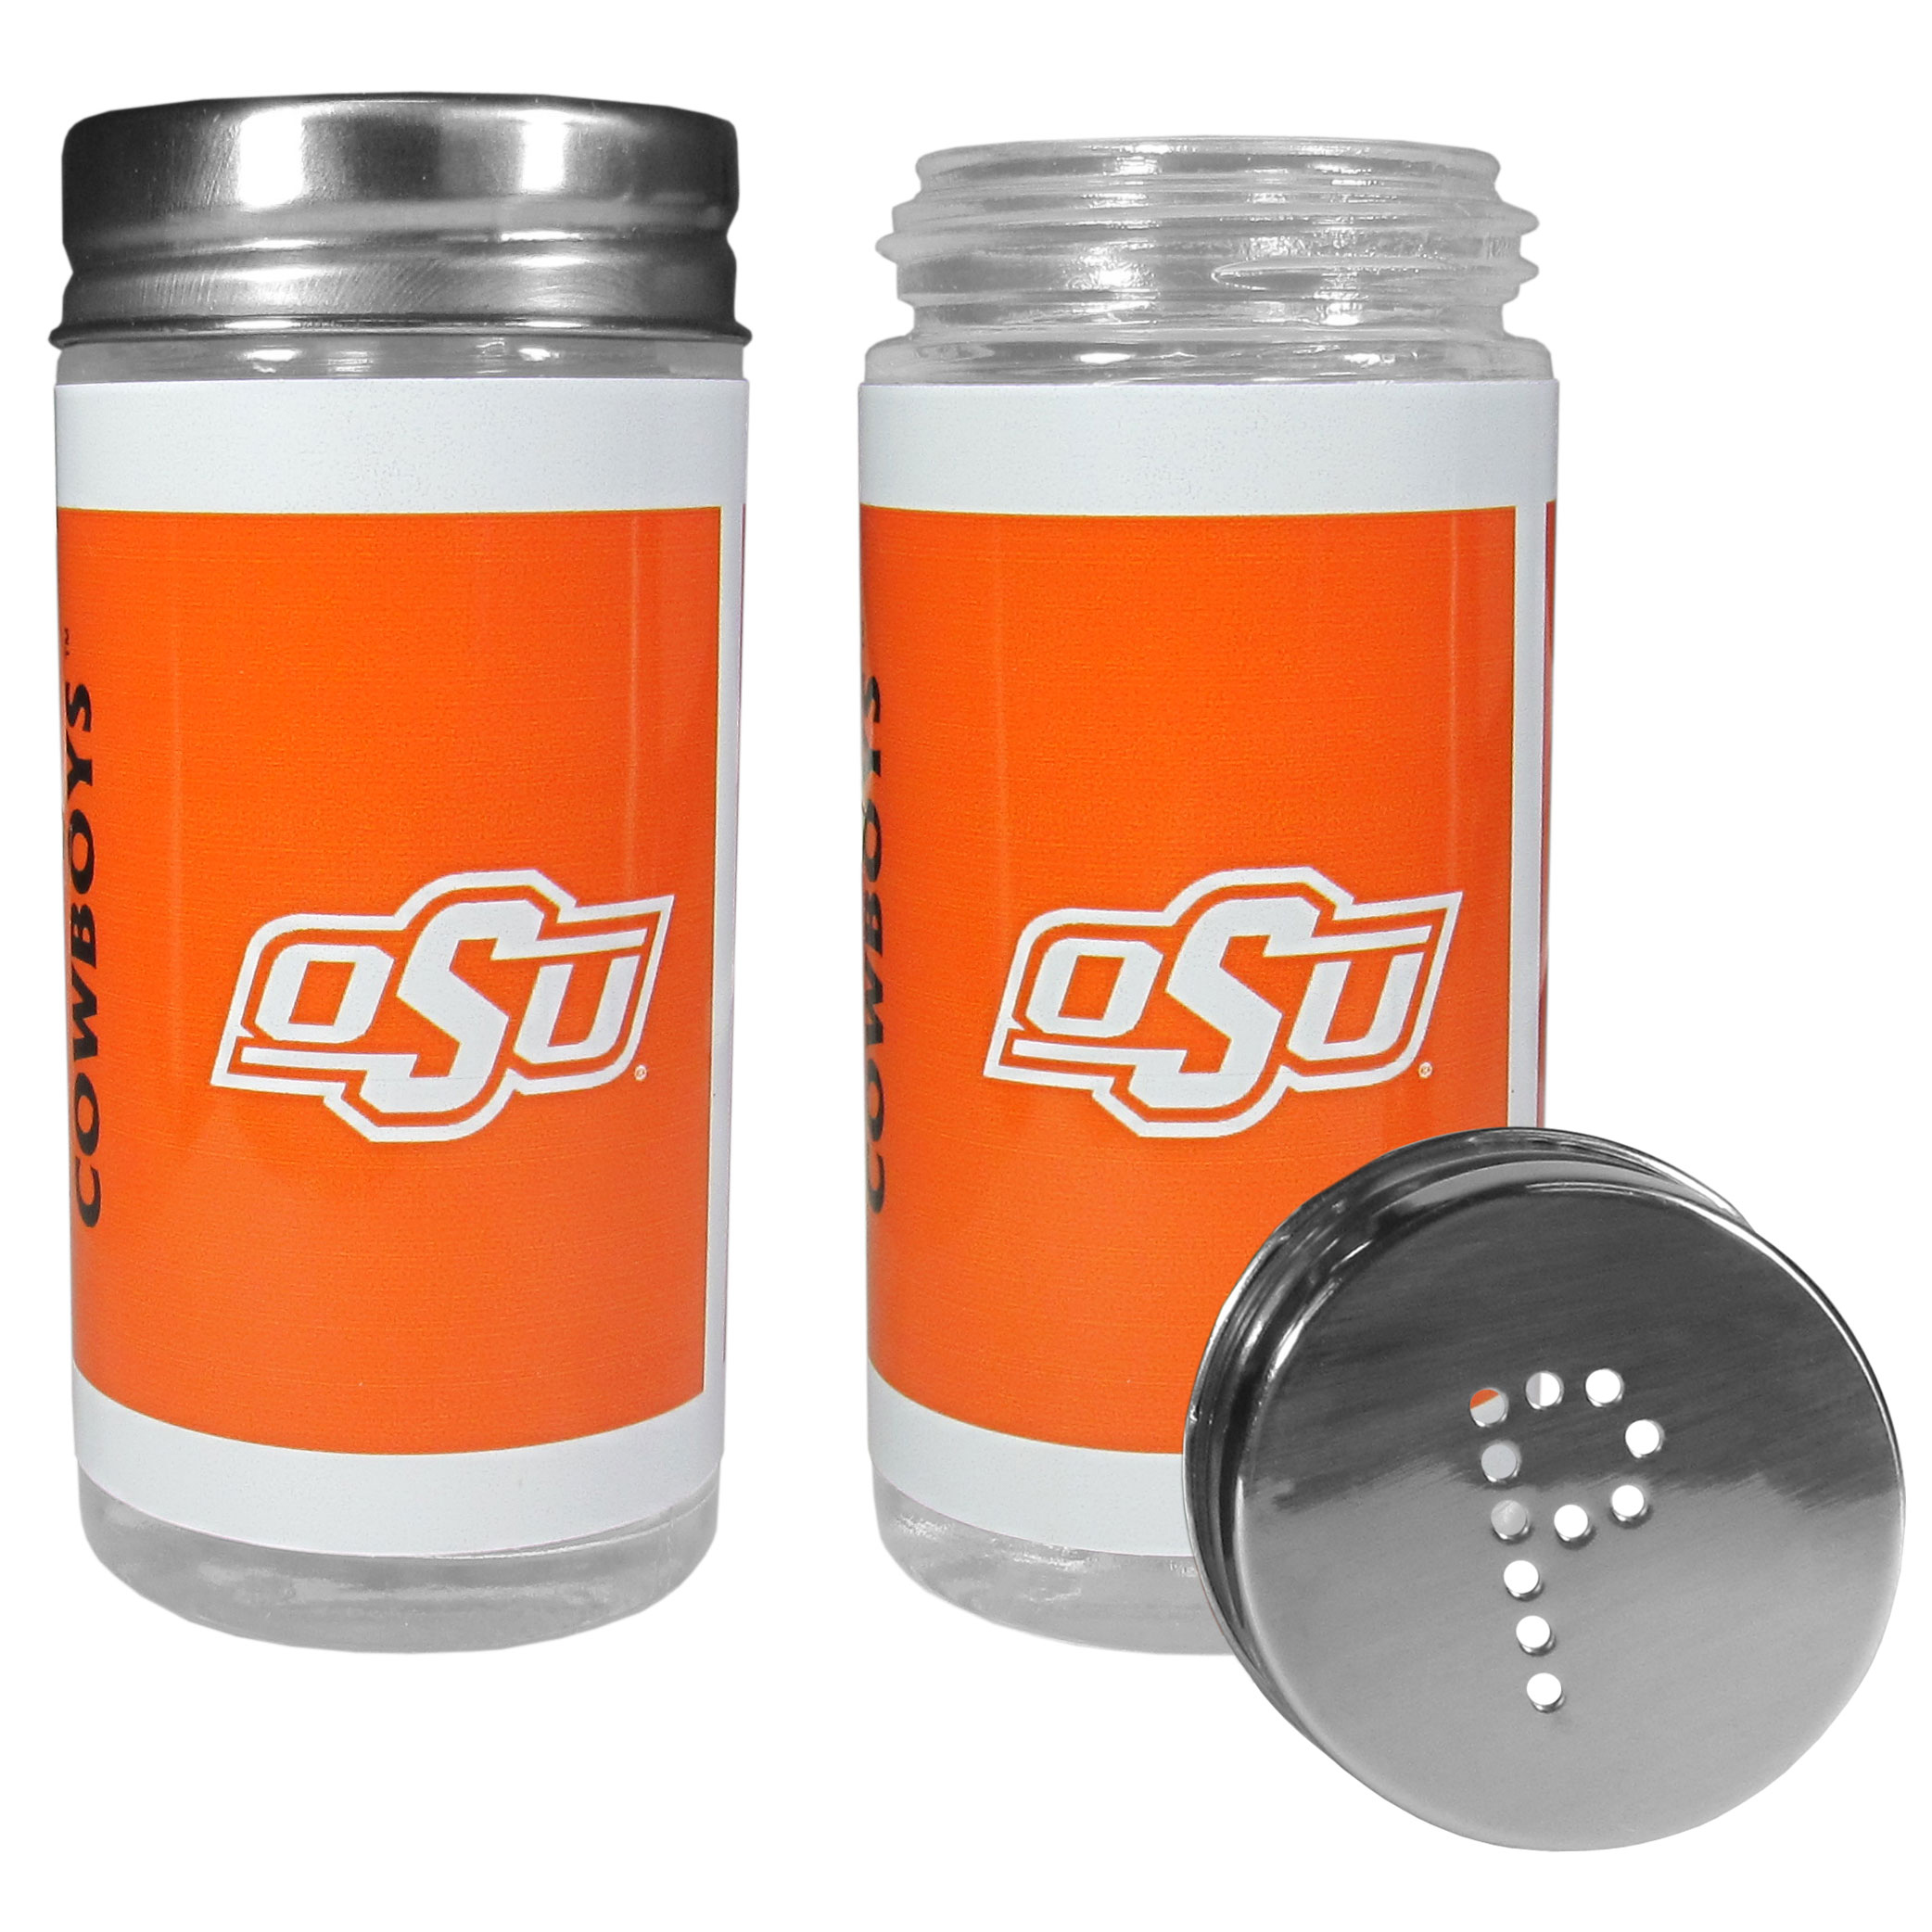 Oklahoma St. Cowboys Tailgater Salt and Pepper Shakers - No tailgate party is complete without your Oklahoma St. Cowboys salt & pepper shakers featuring bright team graphics. The glass shakers are 3.75 inches tall and the screw top lids have holes that spell out P and S. These team shakers are a great grill accessory whether you are barbecuing on the patio, picnicing or having a game day party.